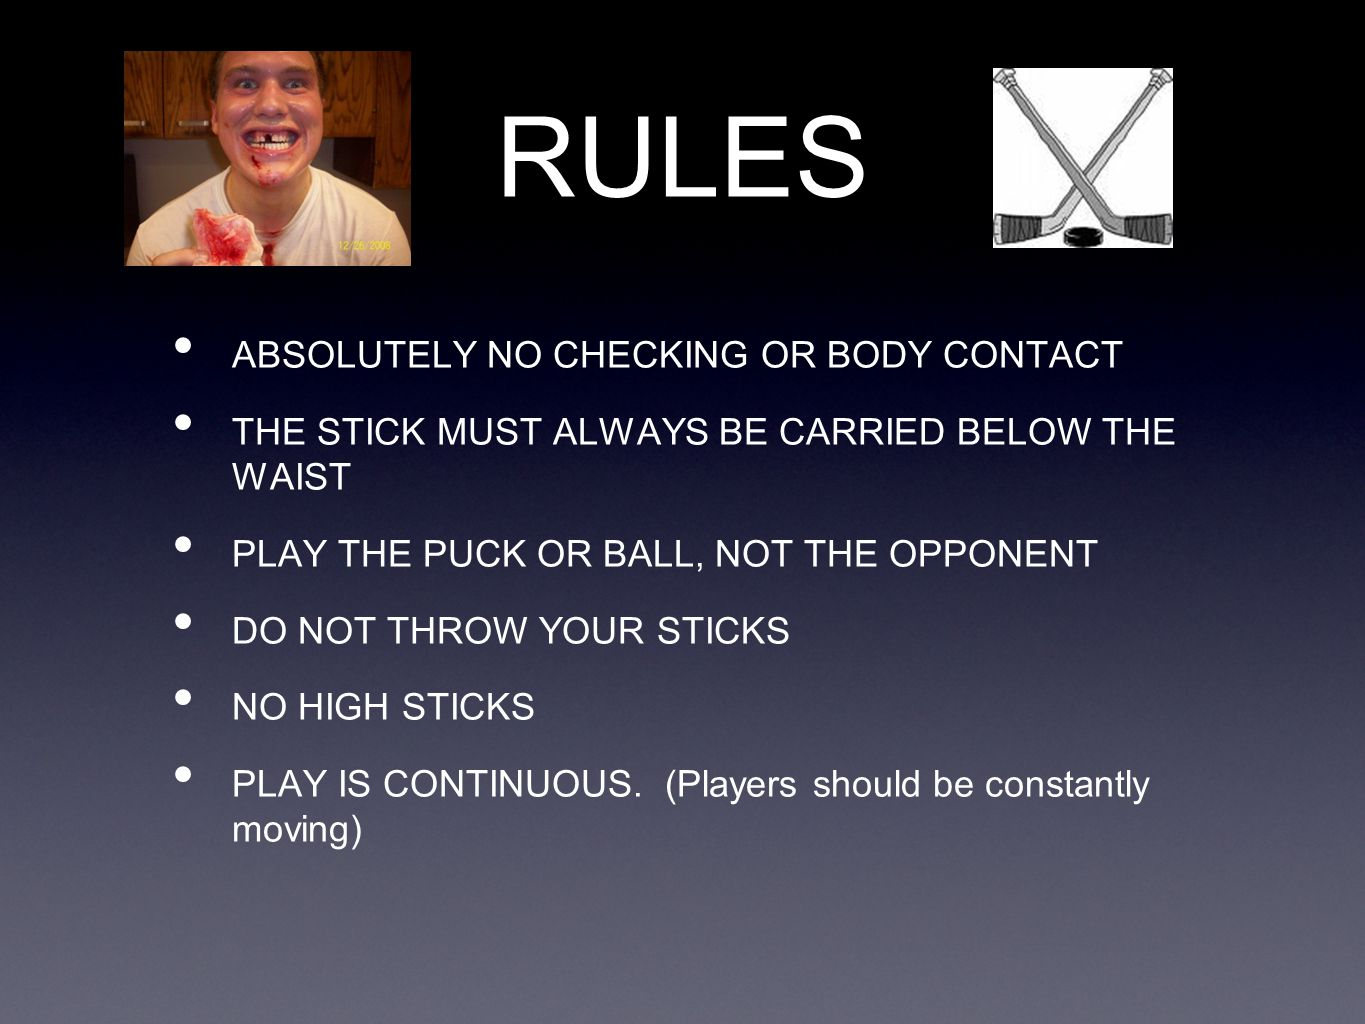 RULES ABSOLUTELY NO CHECKING OR BODY CONTACT THE STICK MUST ALWAYS BE CARRIED BELOW THE WAIST PLAY THE PUCK OR BALL, NOT THE OPPONENT DO NOT THROW YOUR STICKS NO HIGH STICKS PLAY IS CONTINUOUS.